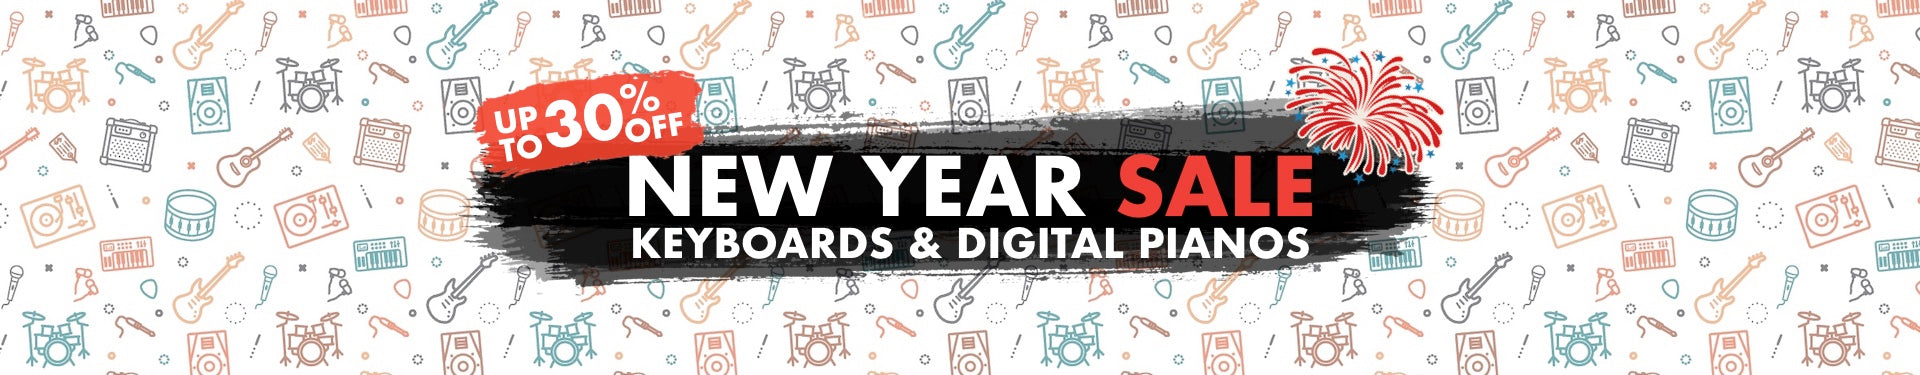 New Year Keyboards & Digital Pianos